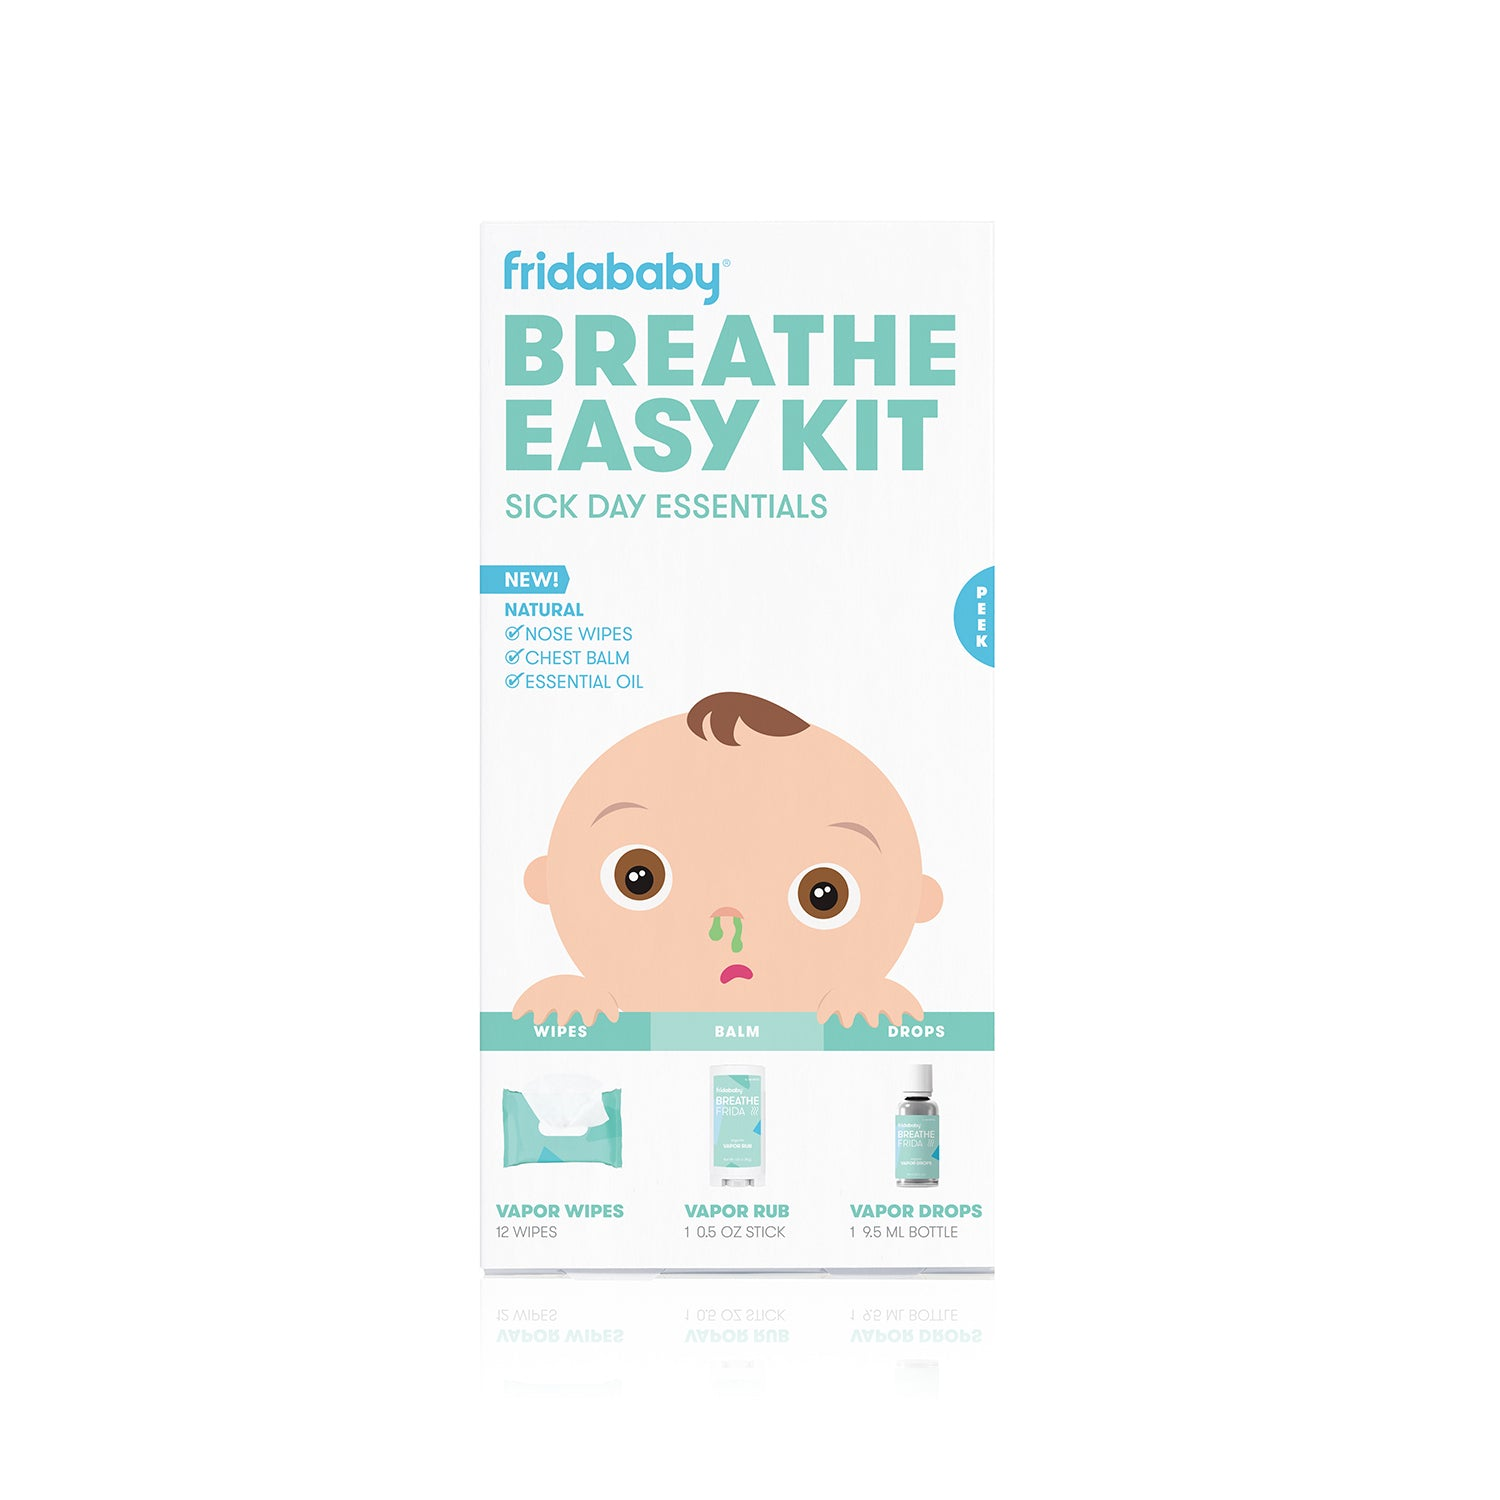 Breathe Easy Kit By Fridababy